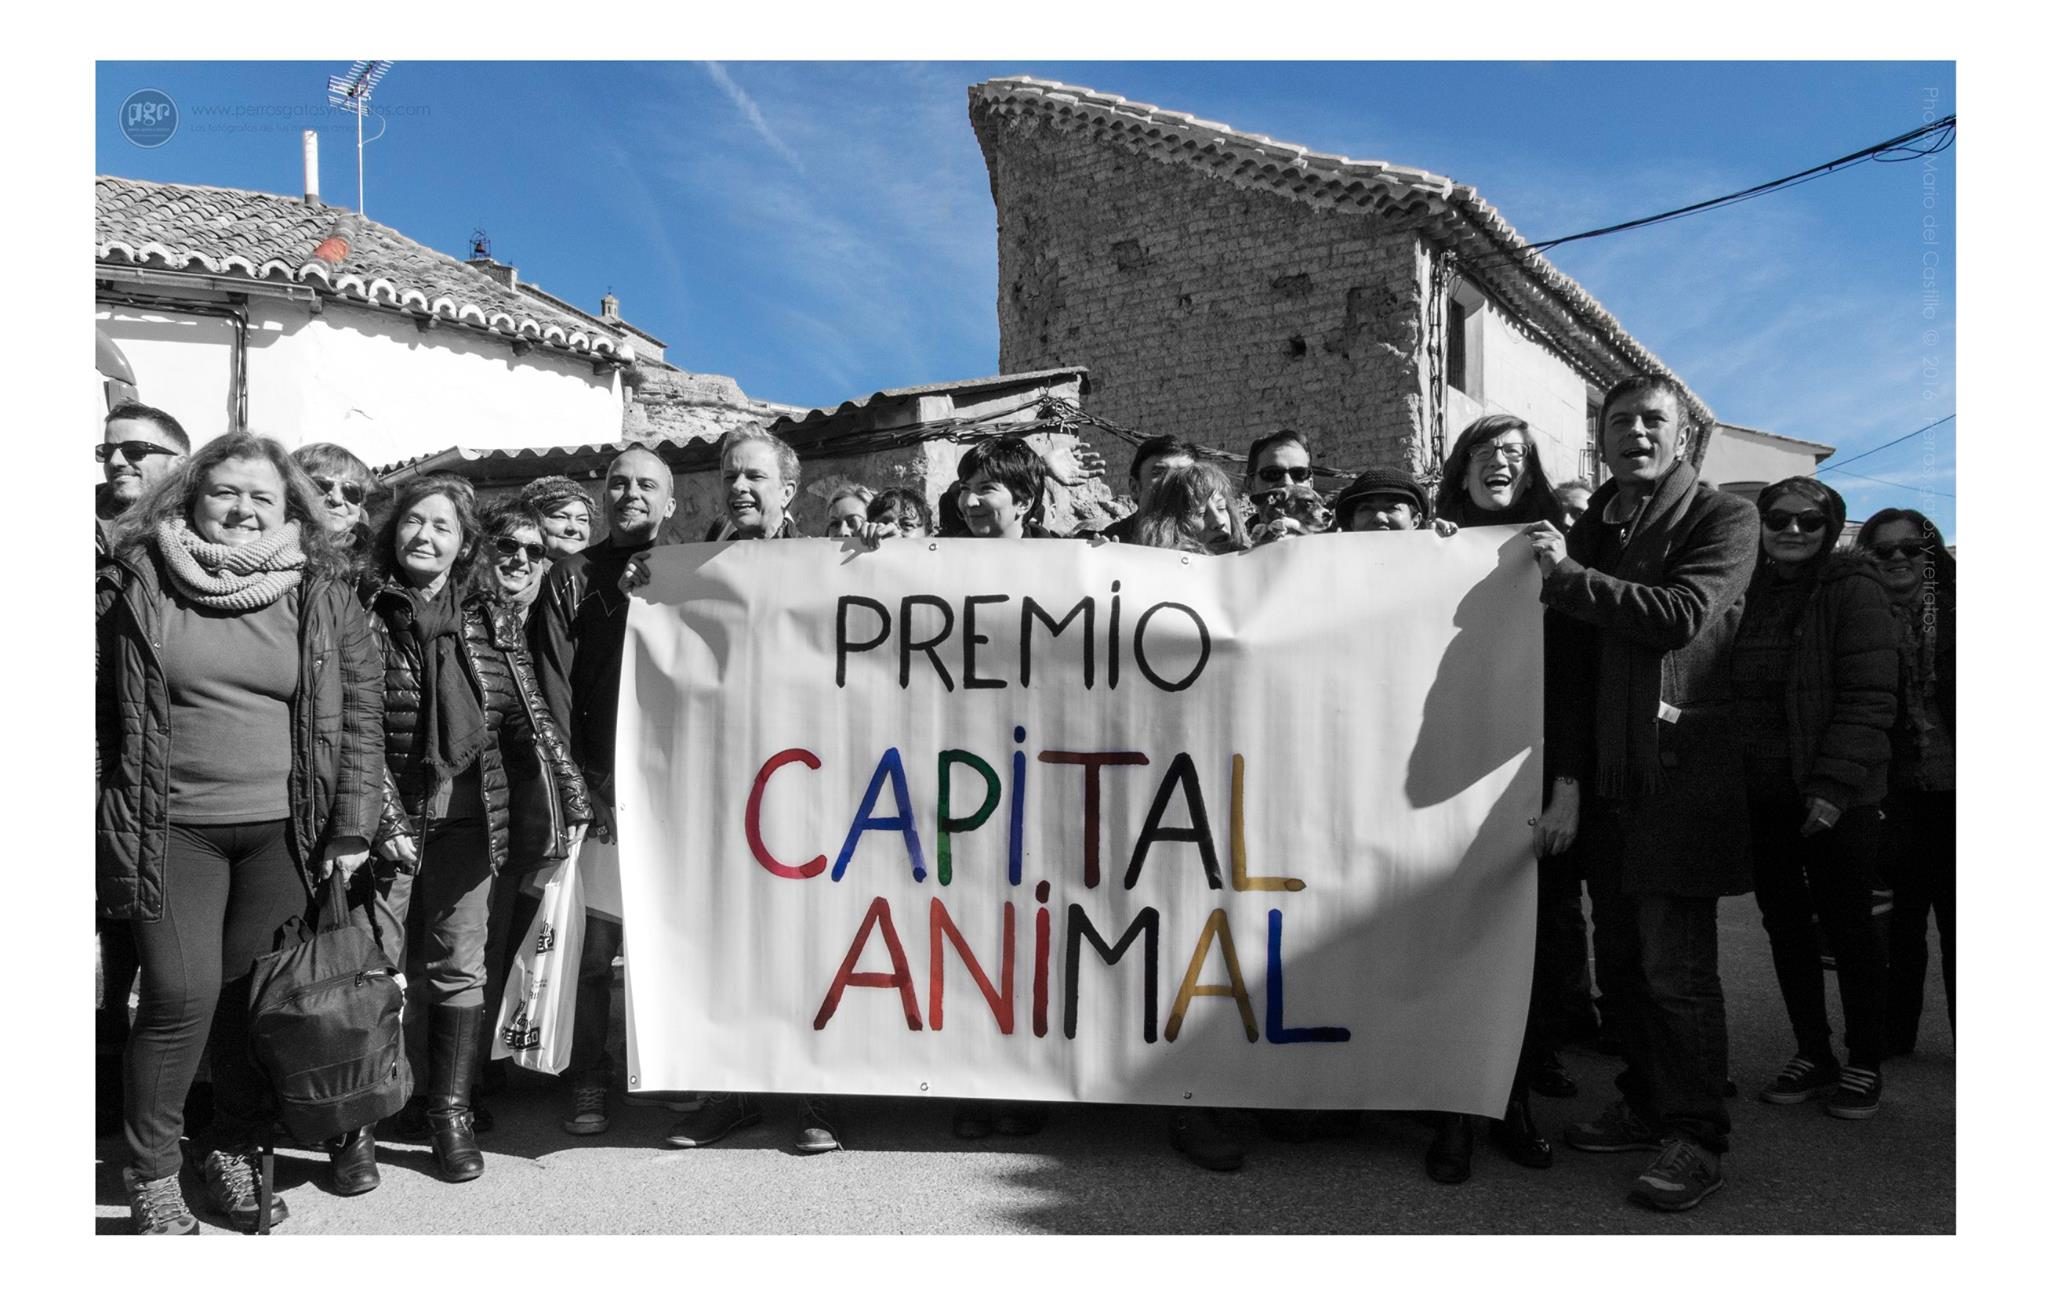 Spaniards declare this town their Animal Capital